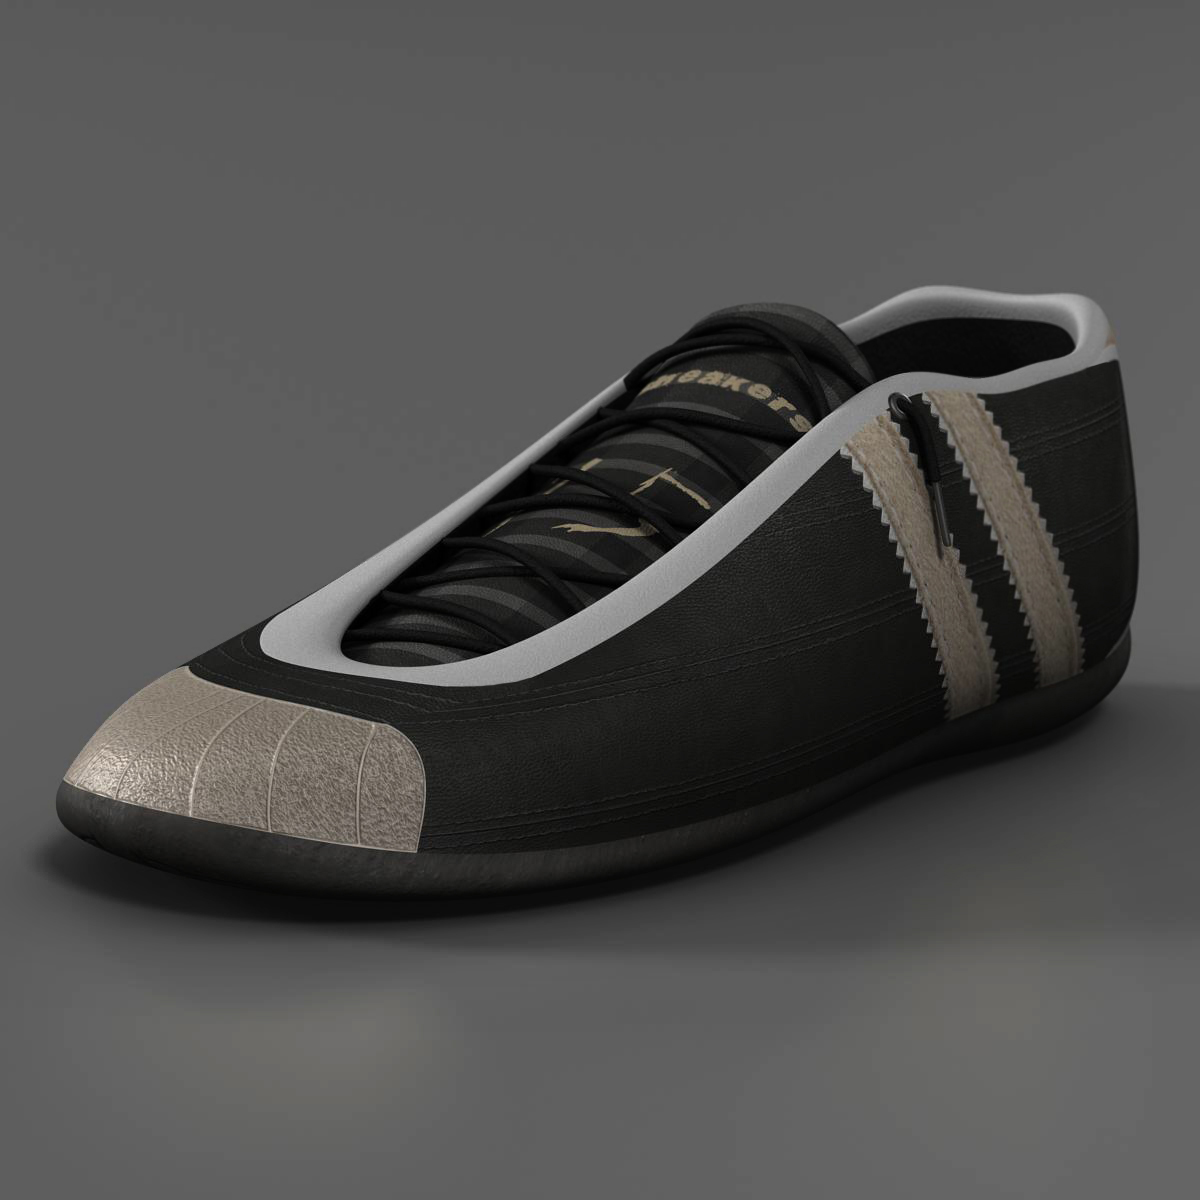 sneakers 3d model 3ds max fbx c4d ma mb obj 160383